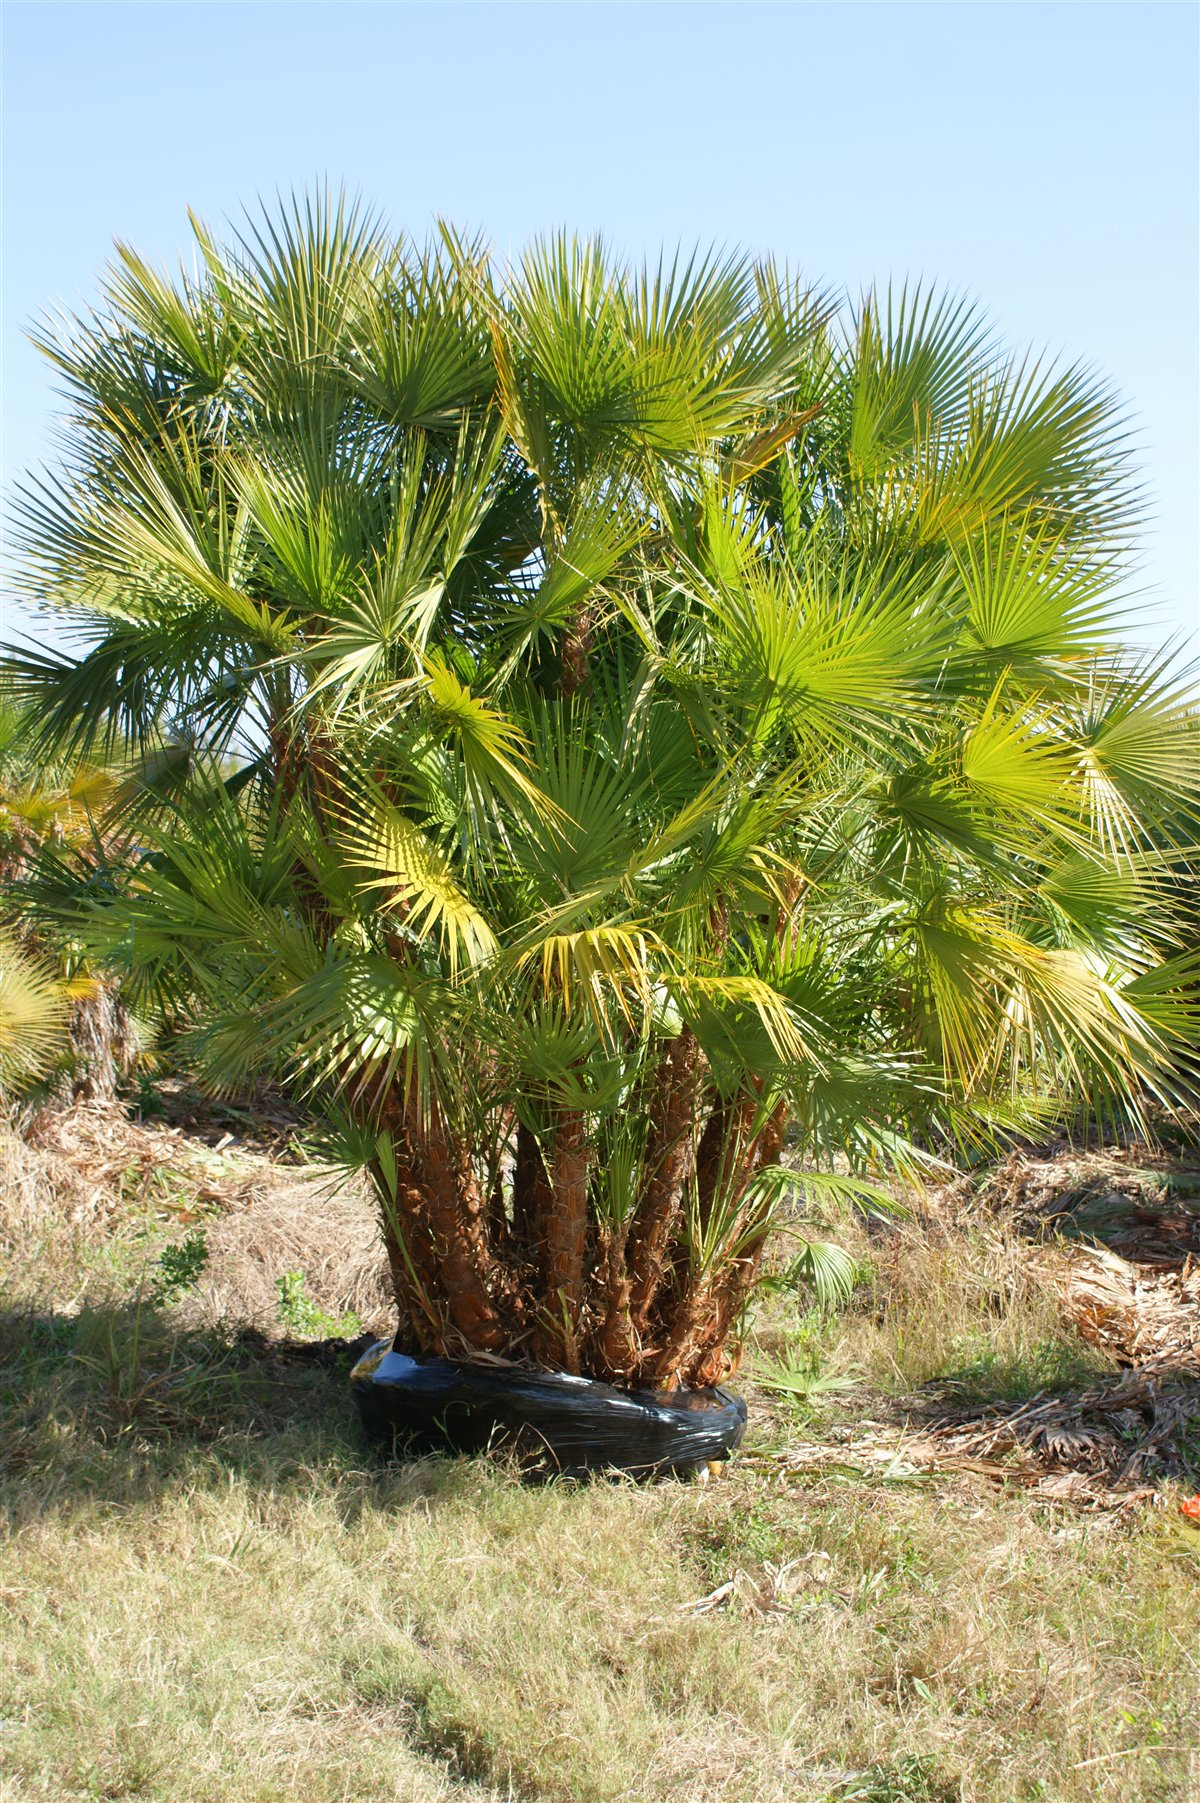 Jax Palm Trees has extensive Inventory including Paurotis in Jacksonville, Florida.